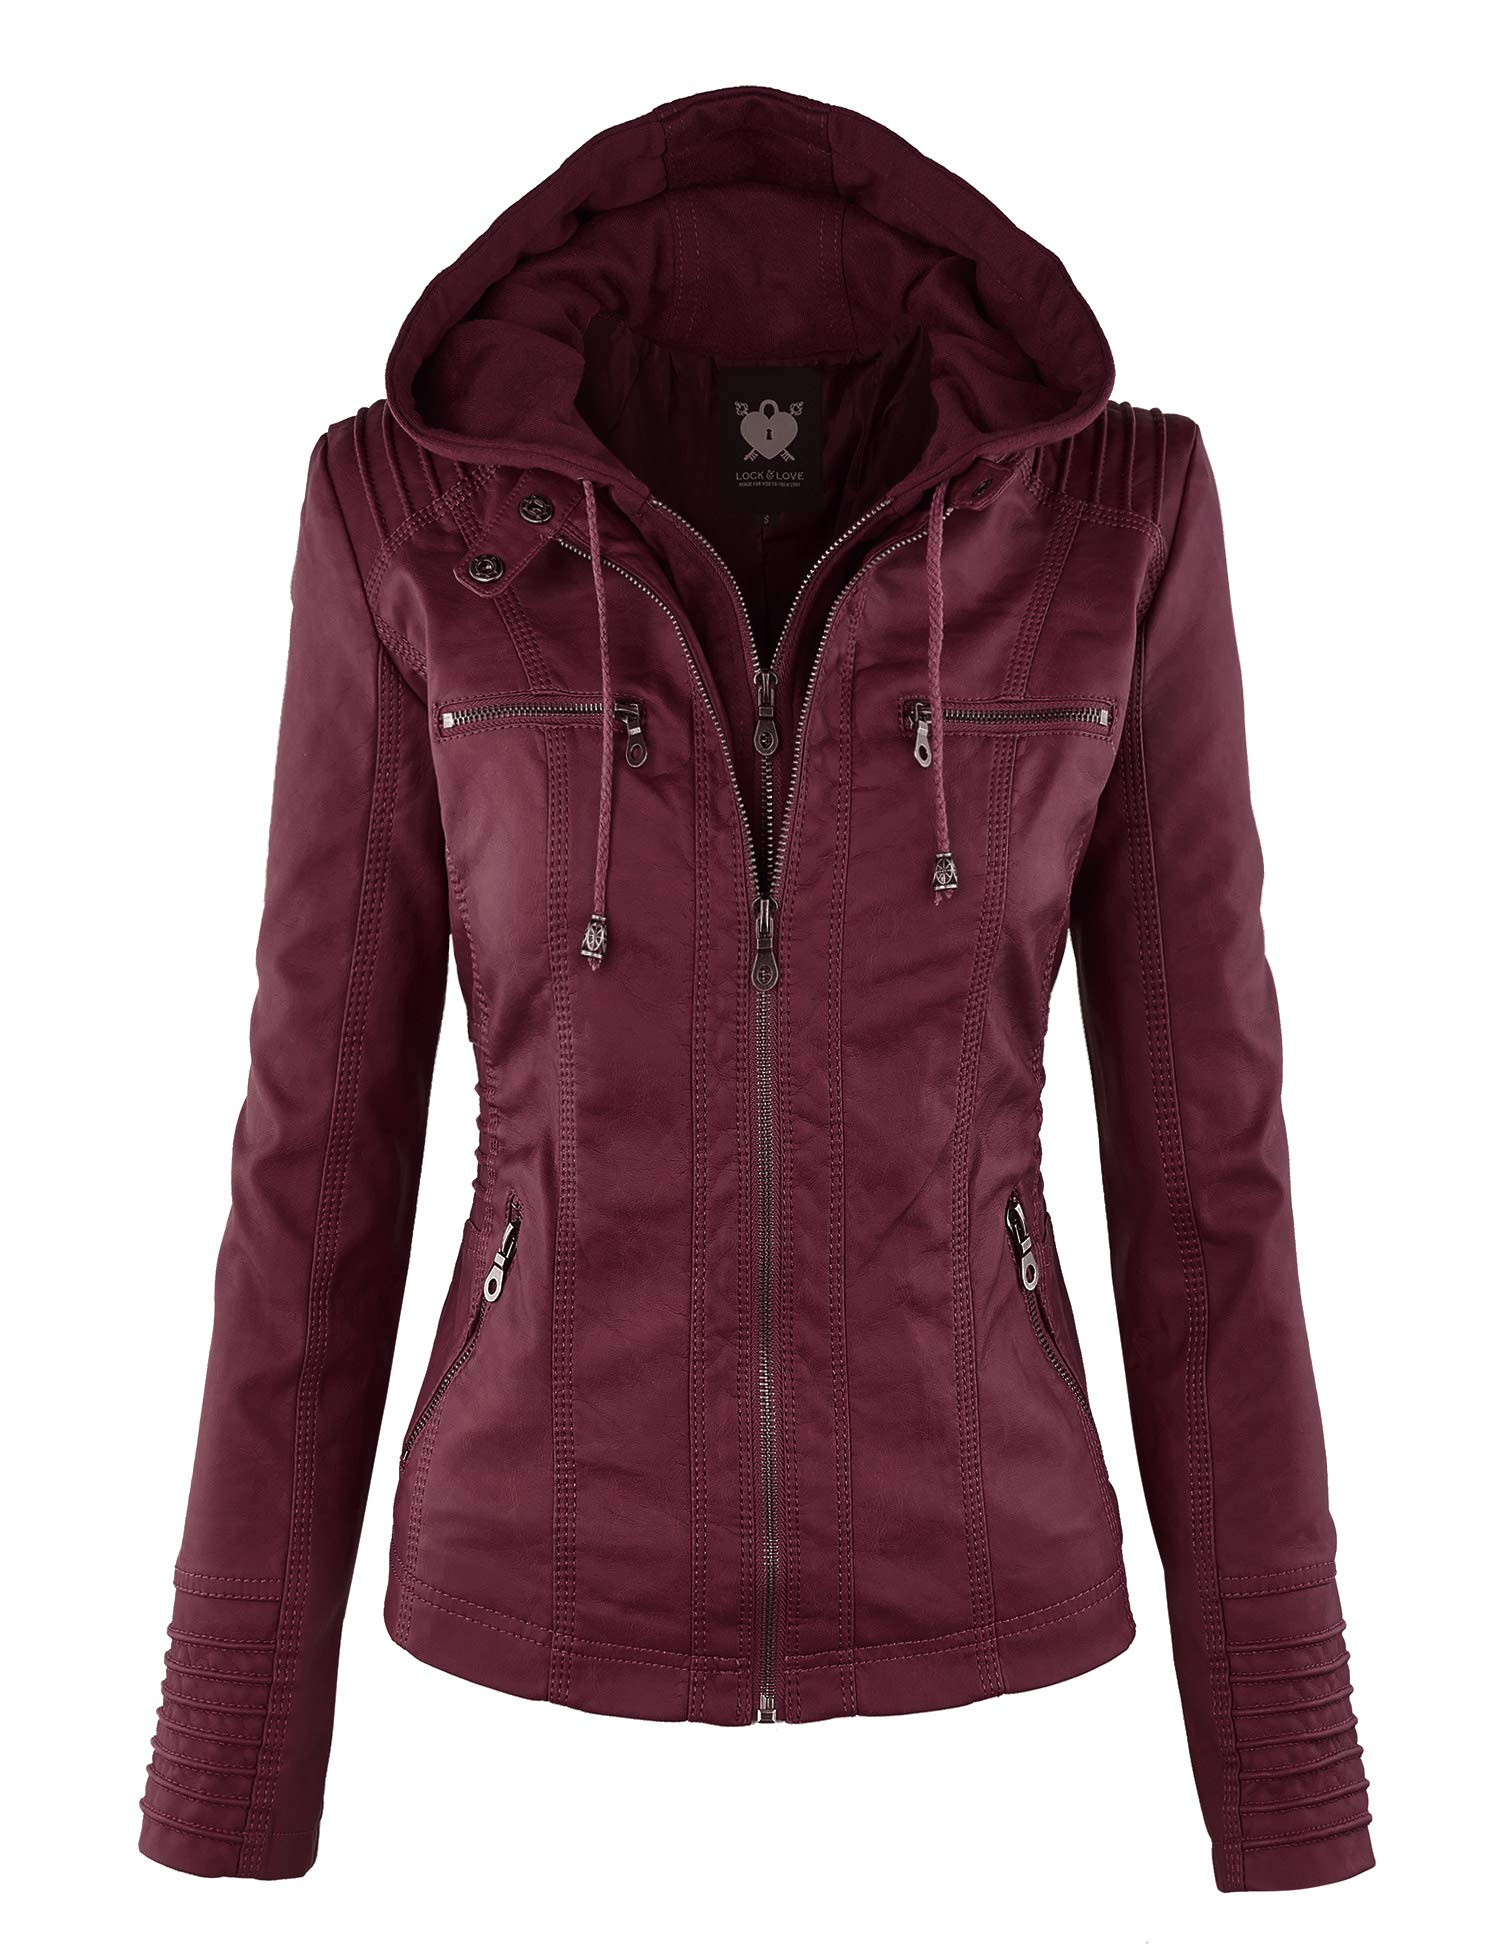 Lock and Love LL WJC663 Womens Removable Hoodie Motorcyle Jacket XXL Wine